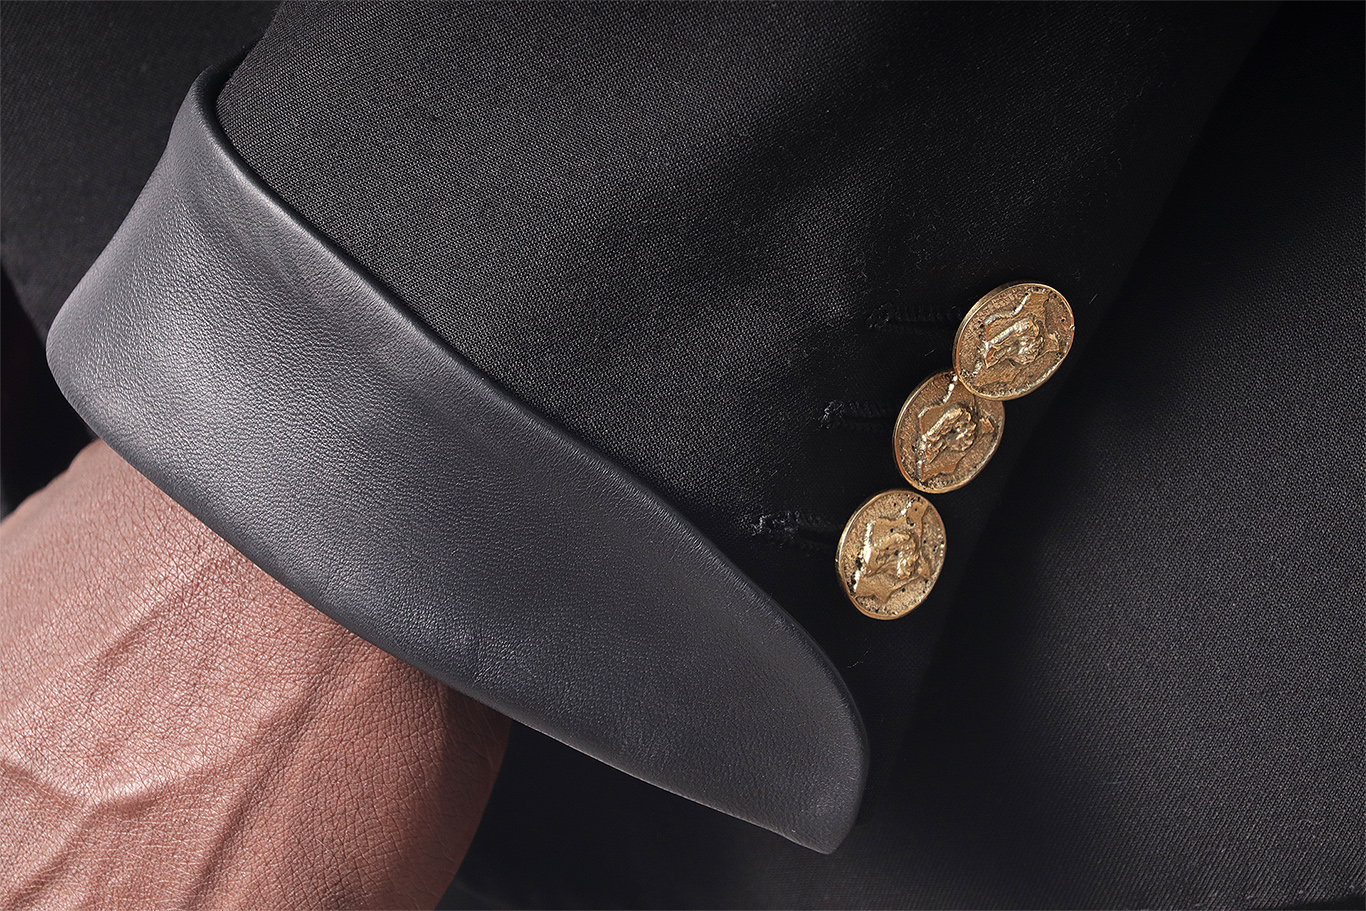 made in Kenya quality metal buttons